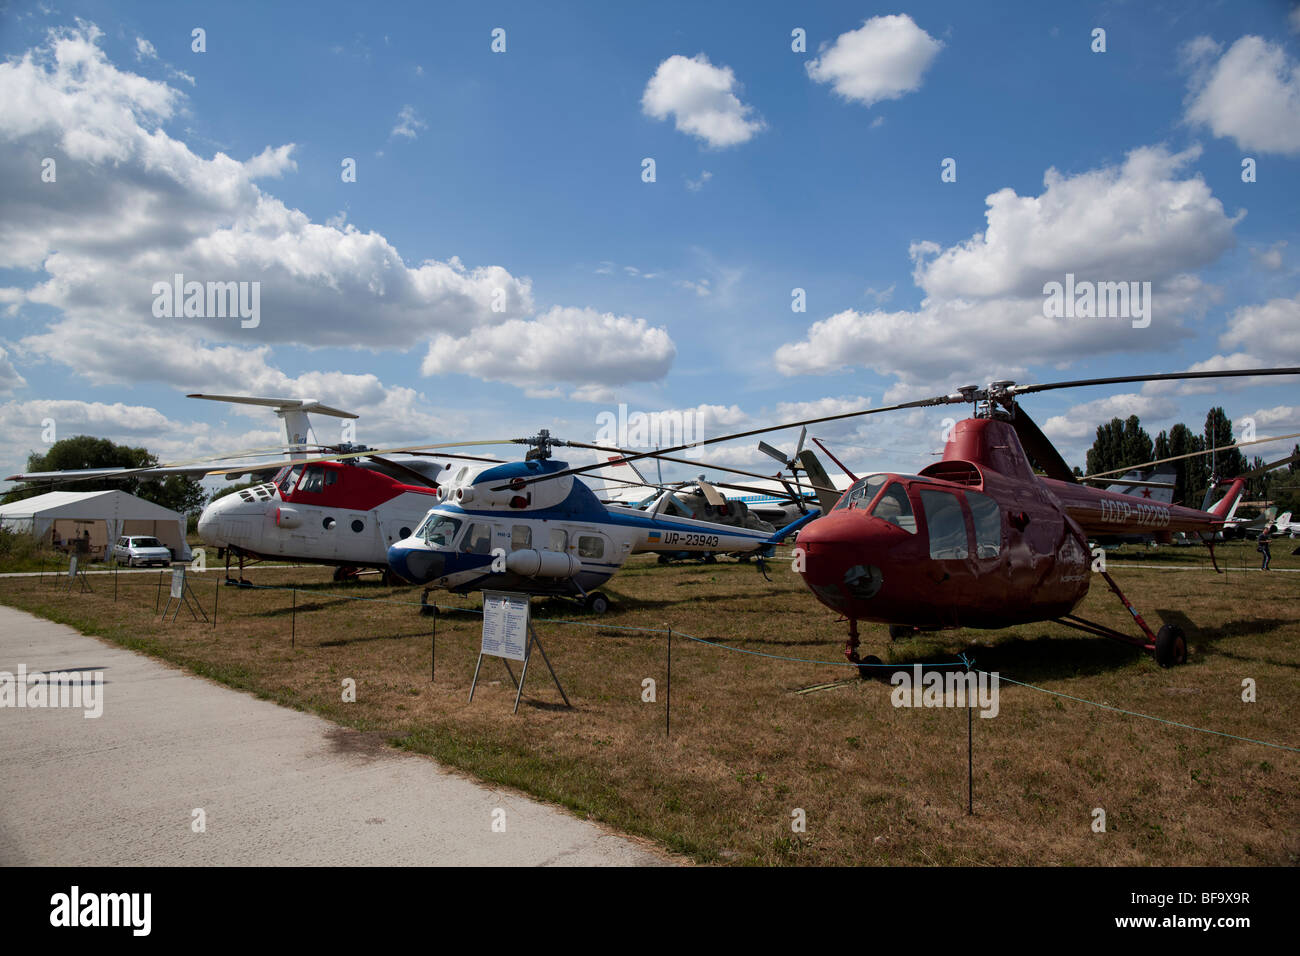 Historical helicopter are seen in the Ukrainian aviation museum in Kiev-Zhulyany. - Stock Image